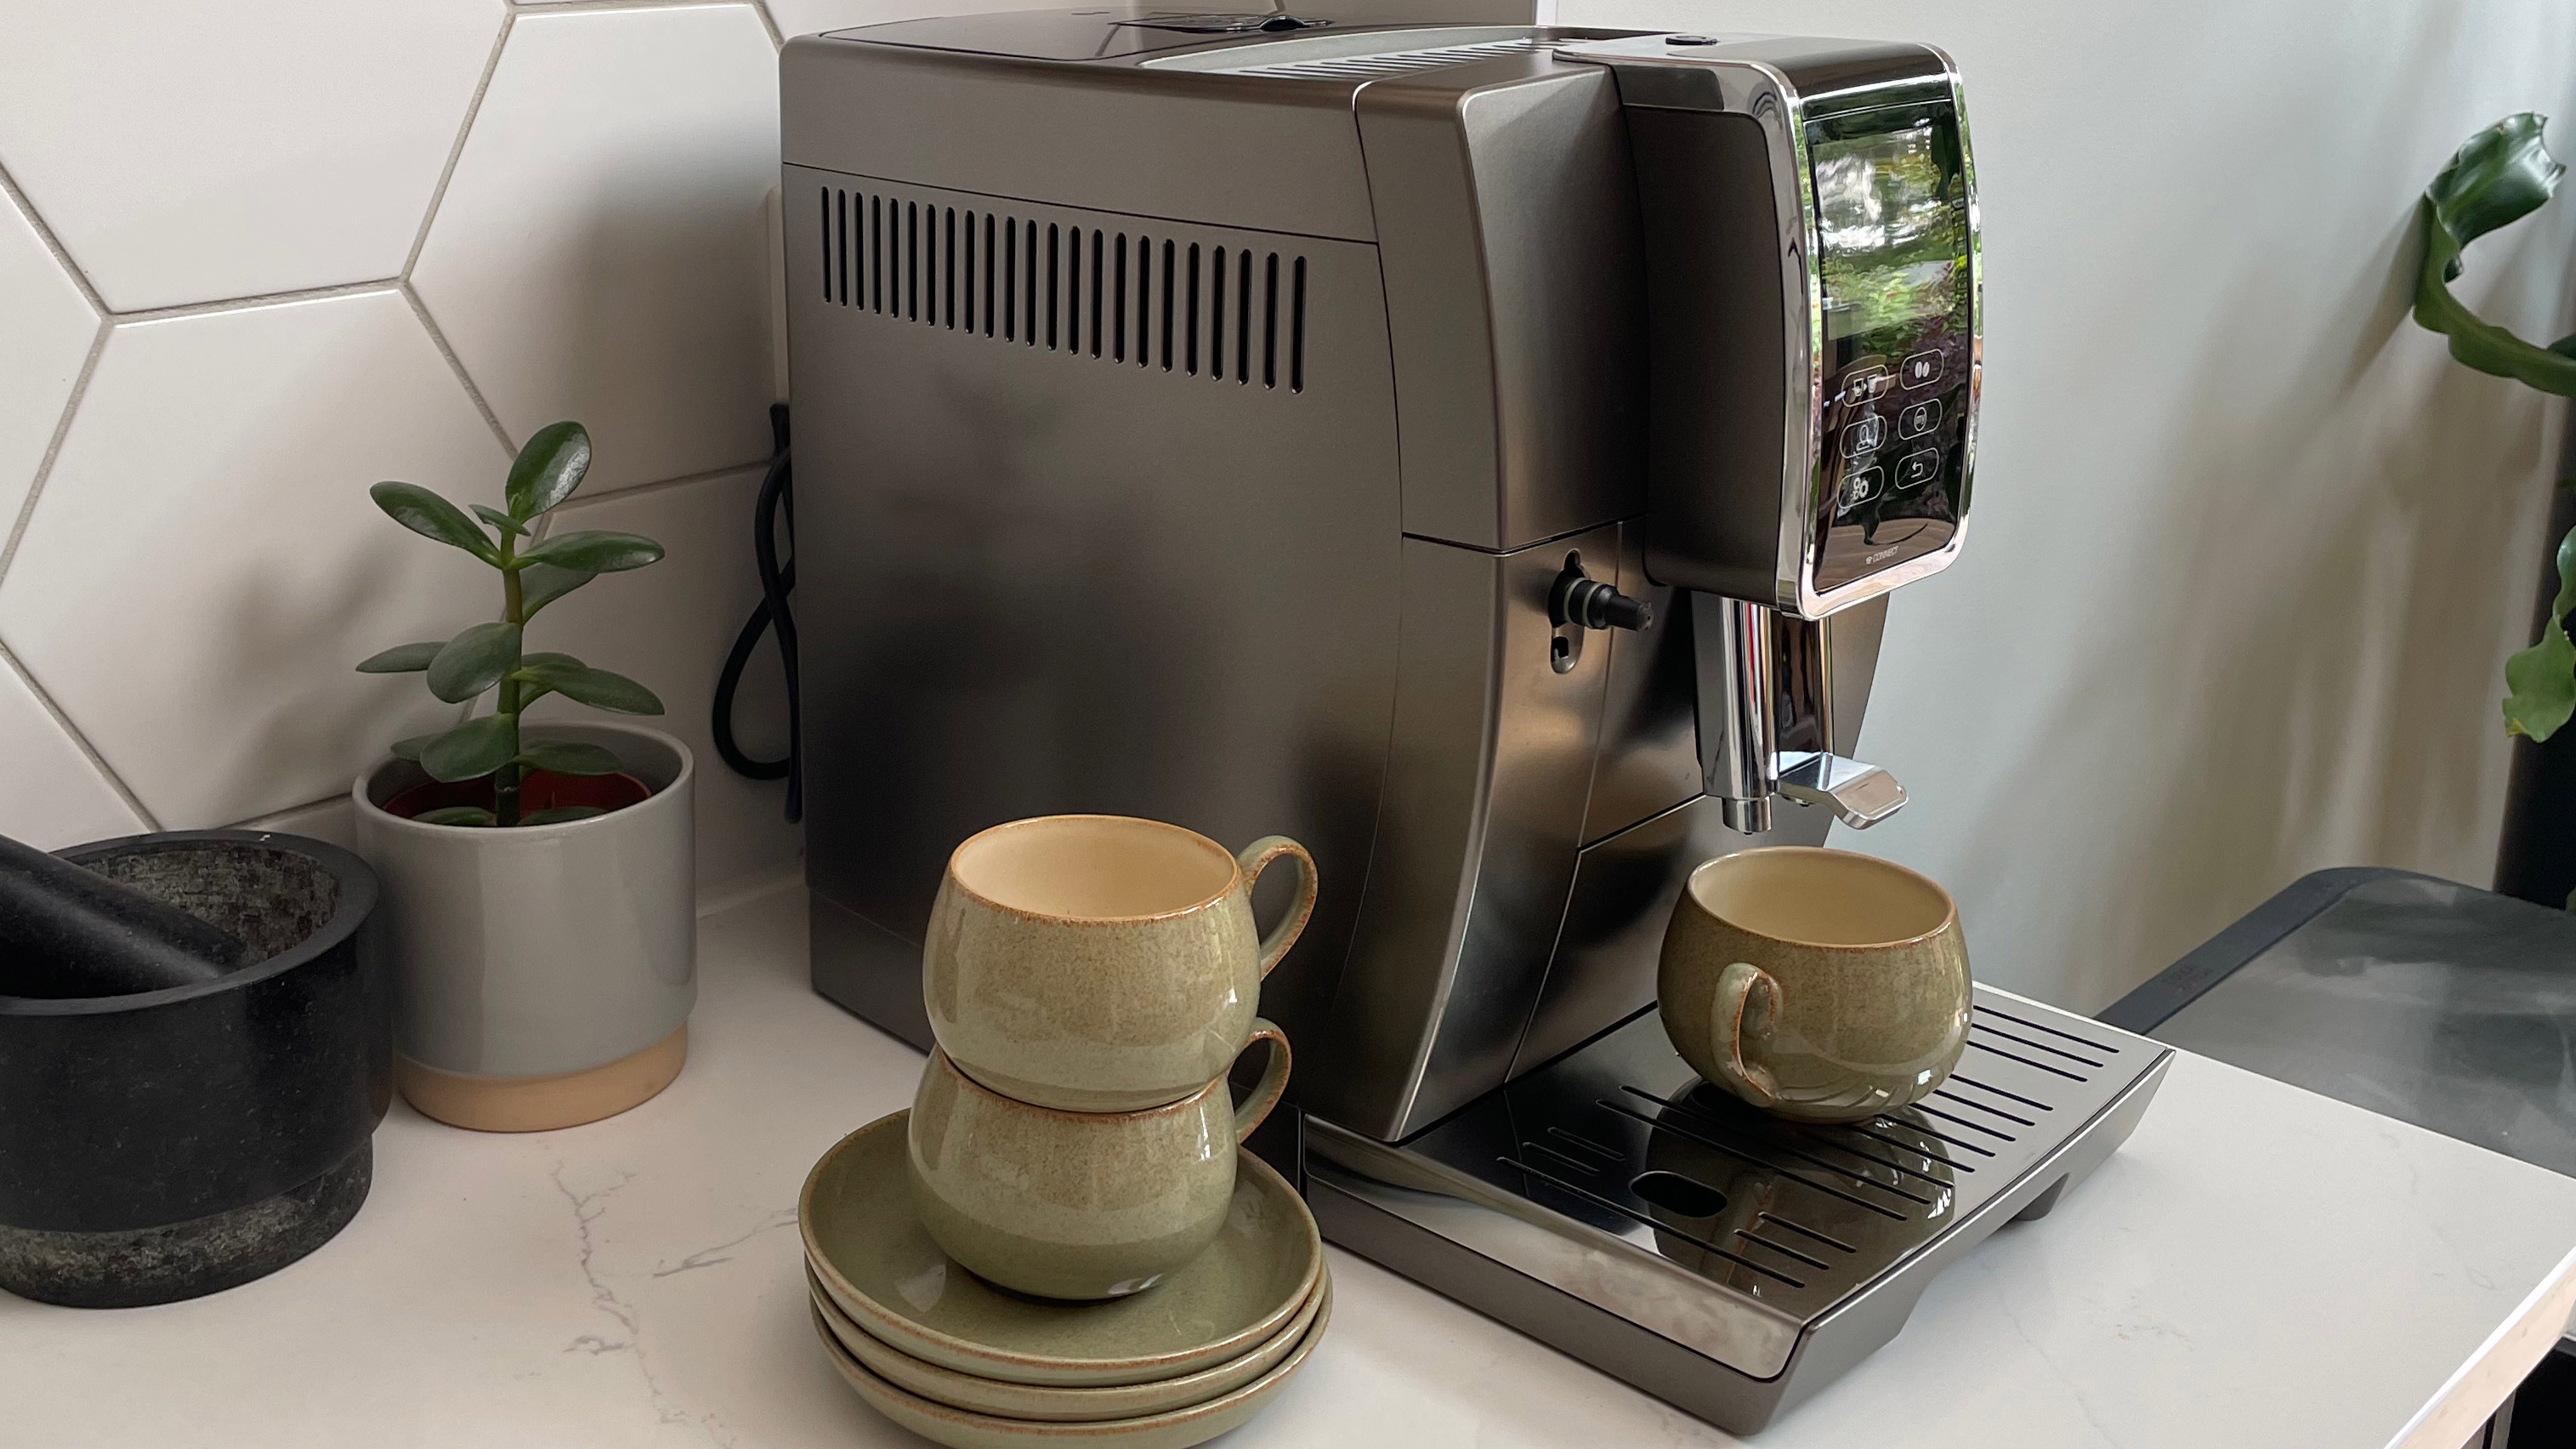 The side of the De'Longhi Dinamica Plus coffee maker on a kitchen countertop with a cup ready to pour an espresso